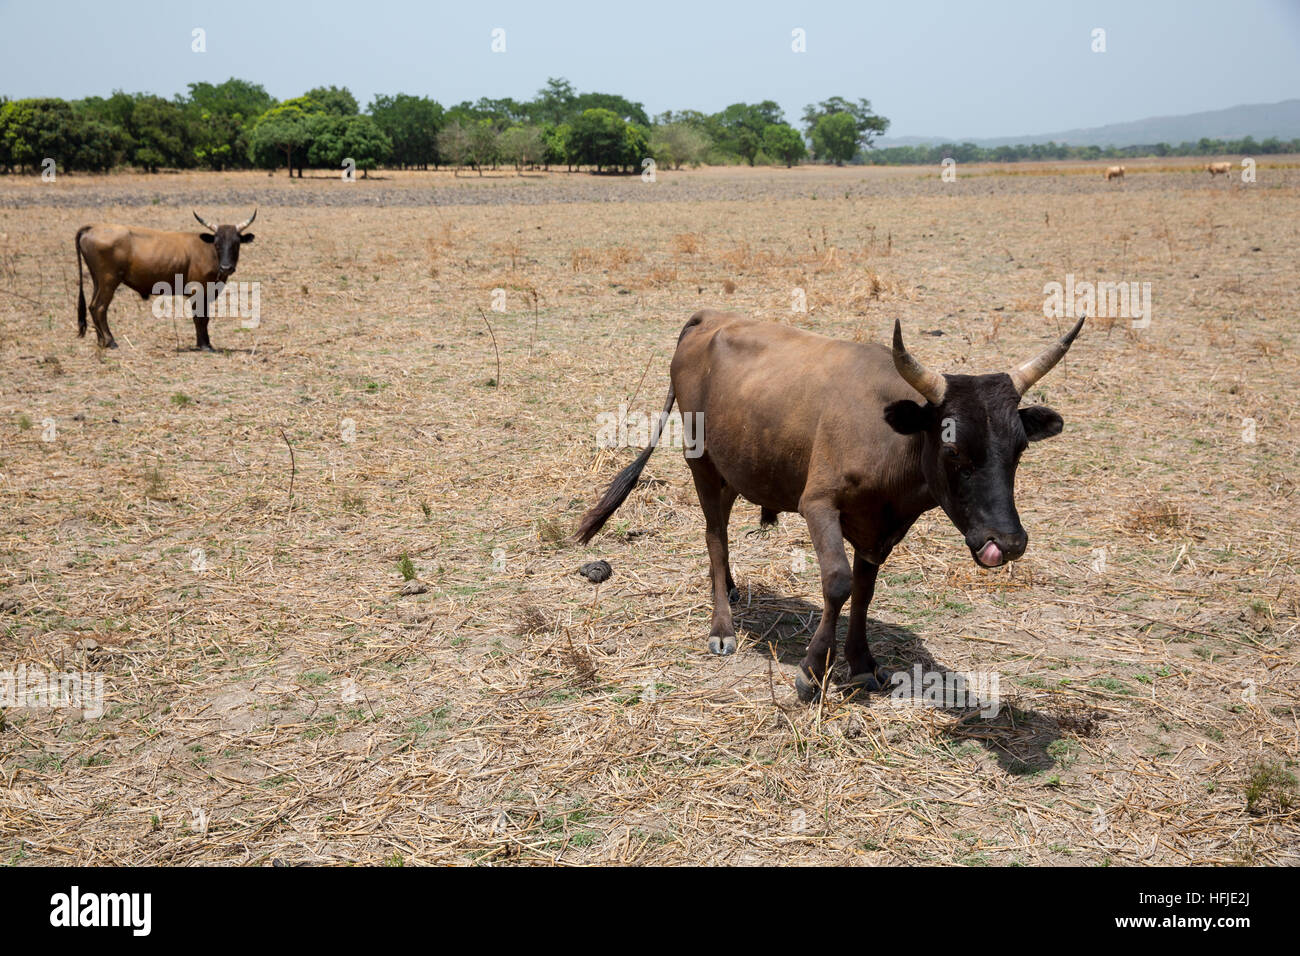 Baro village, Guinea, 1st May 2015: Cattle grazing on agricultural land before the rains begin. Stock Photo